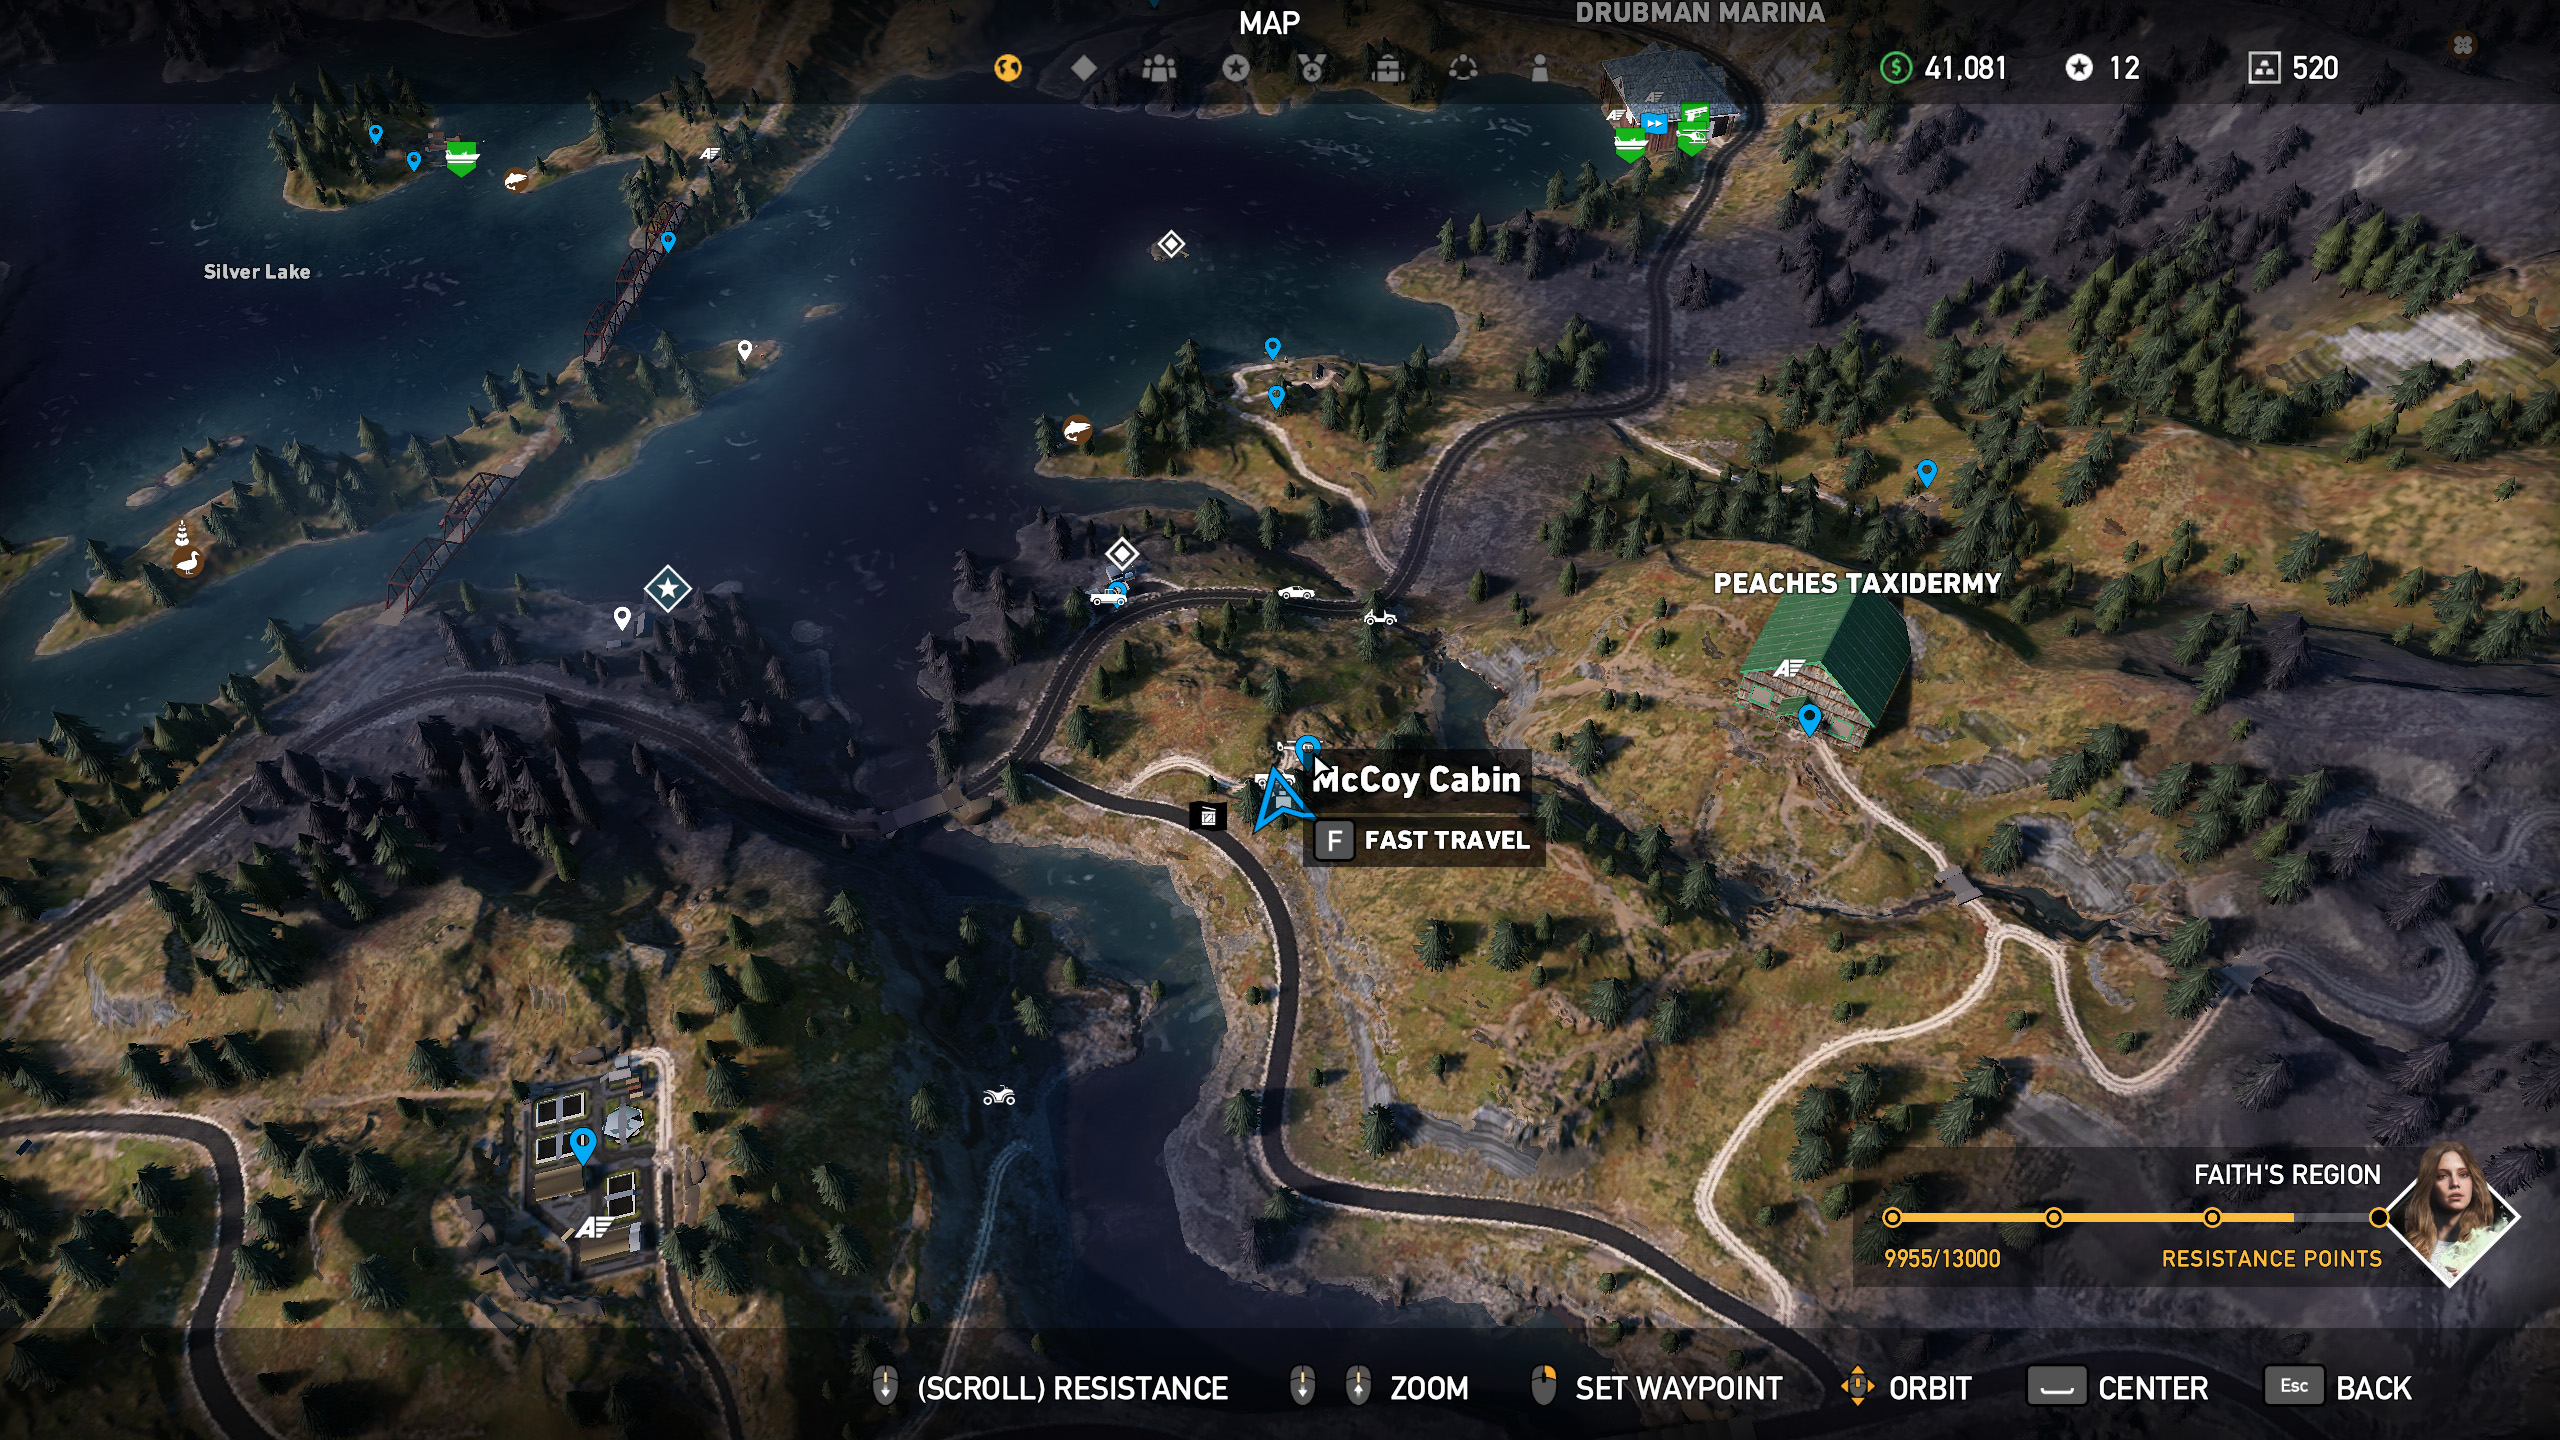 how to start hours of darkness far cry 5